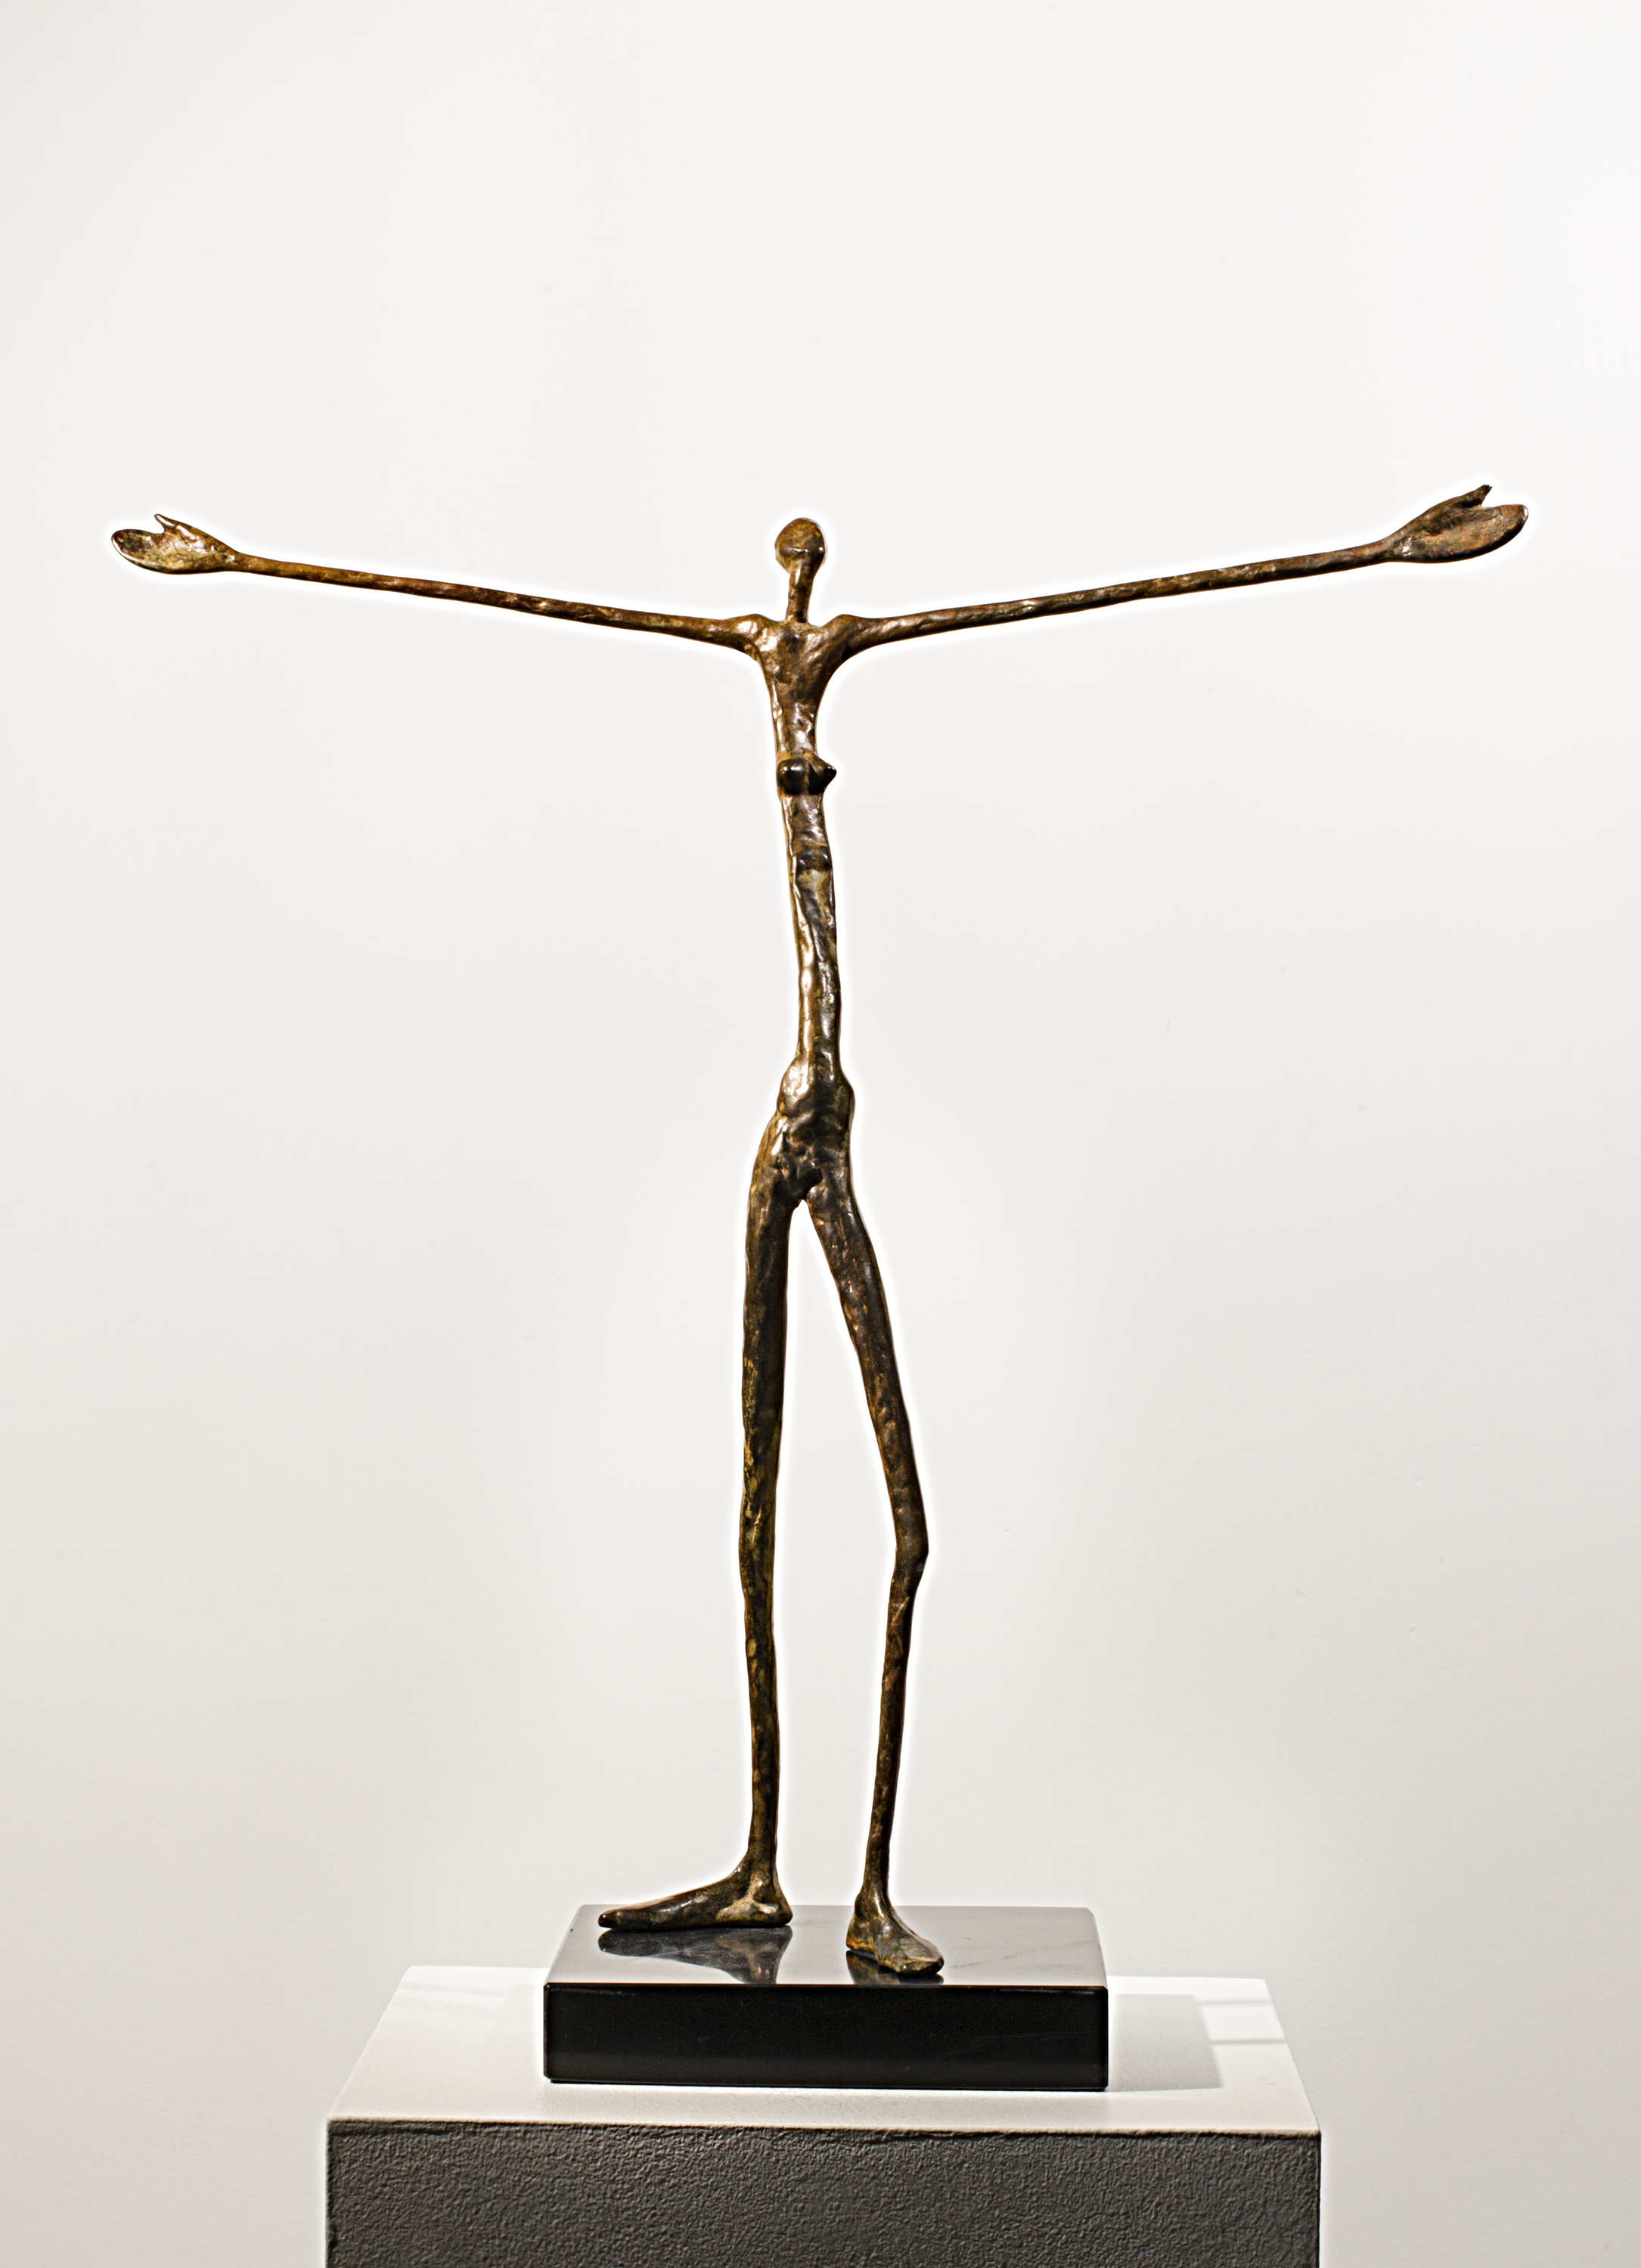 Embracing the World  Bronze Ed. /30 Lost wax 52 x 50 x 15 cm  Greeting the Day  Bronze Ed. /30 Lost wax 43 x 8 x 8 cm